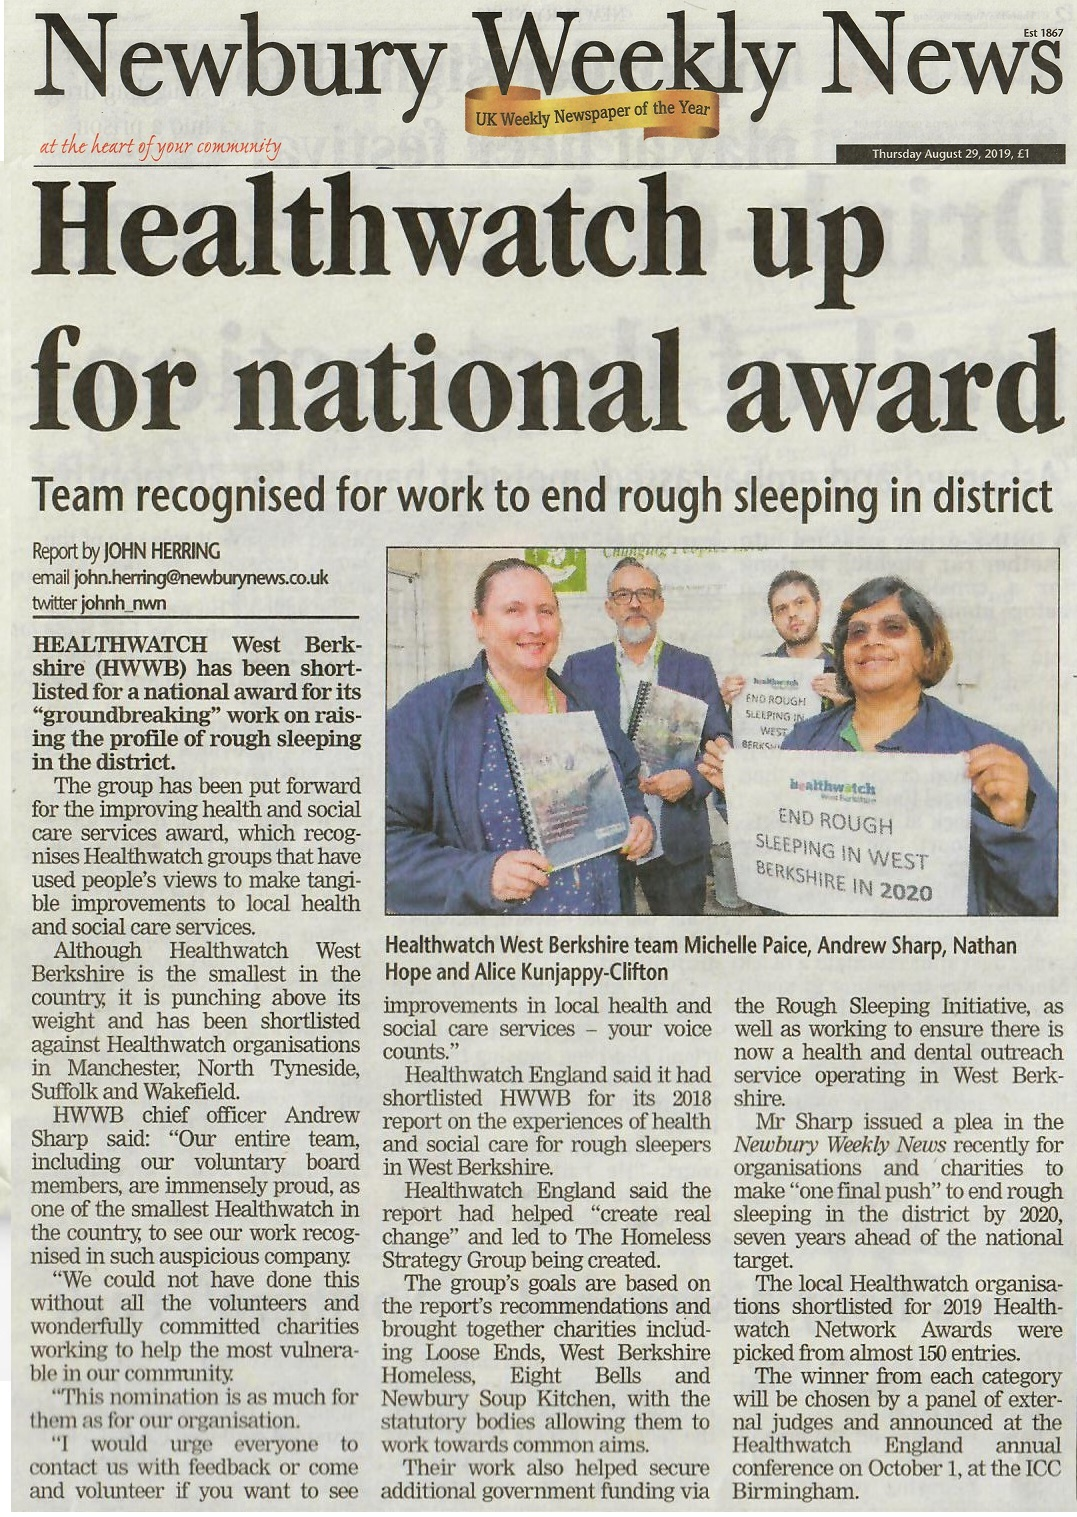 Healthwatch England West Berkshire award homeless rough sleeping